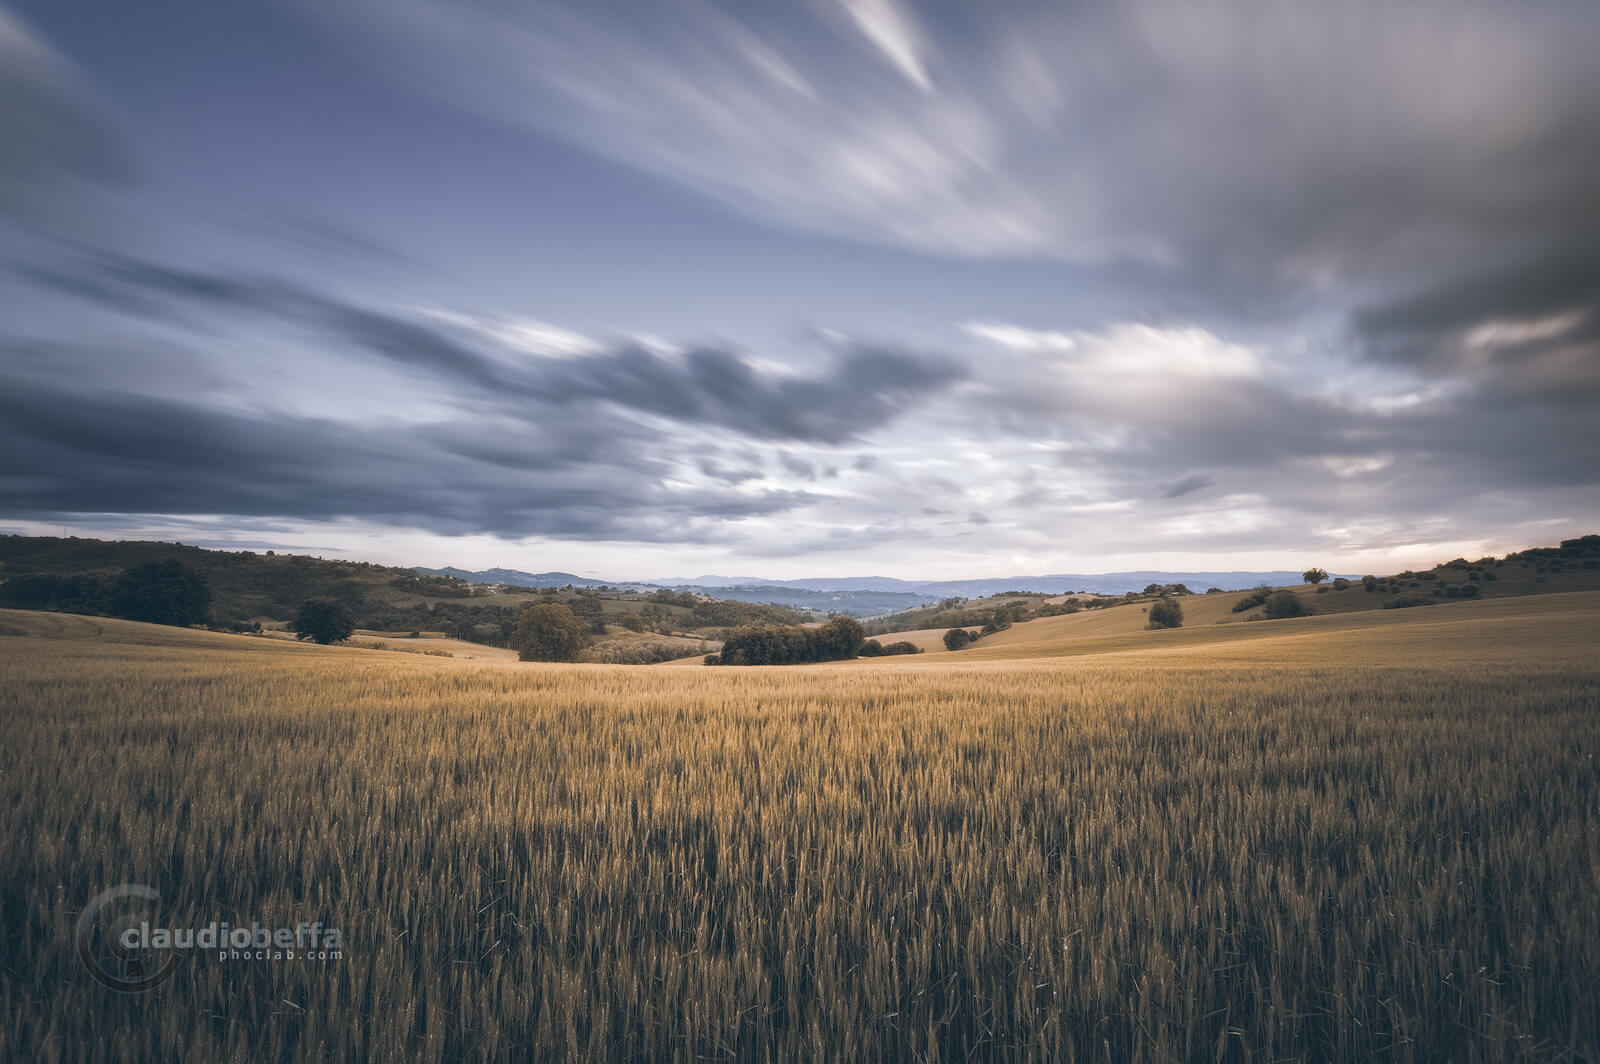 Rolling hills, hills, wheat, wind, clouds, sky, landscape, umbria, italy, long exposure